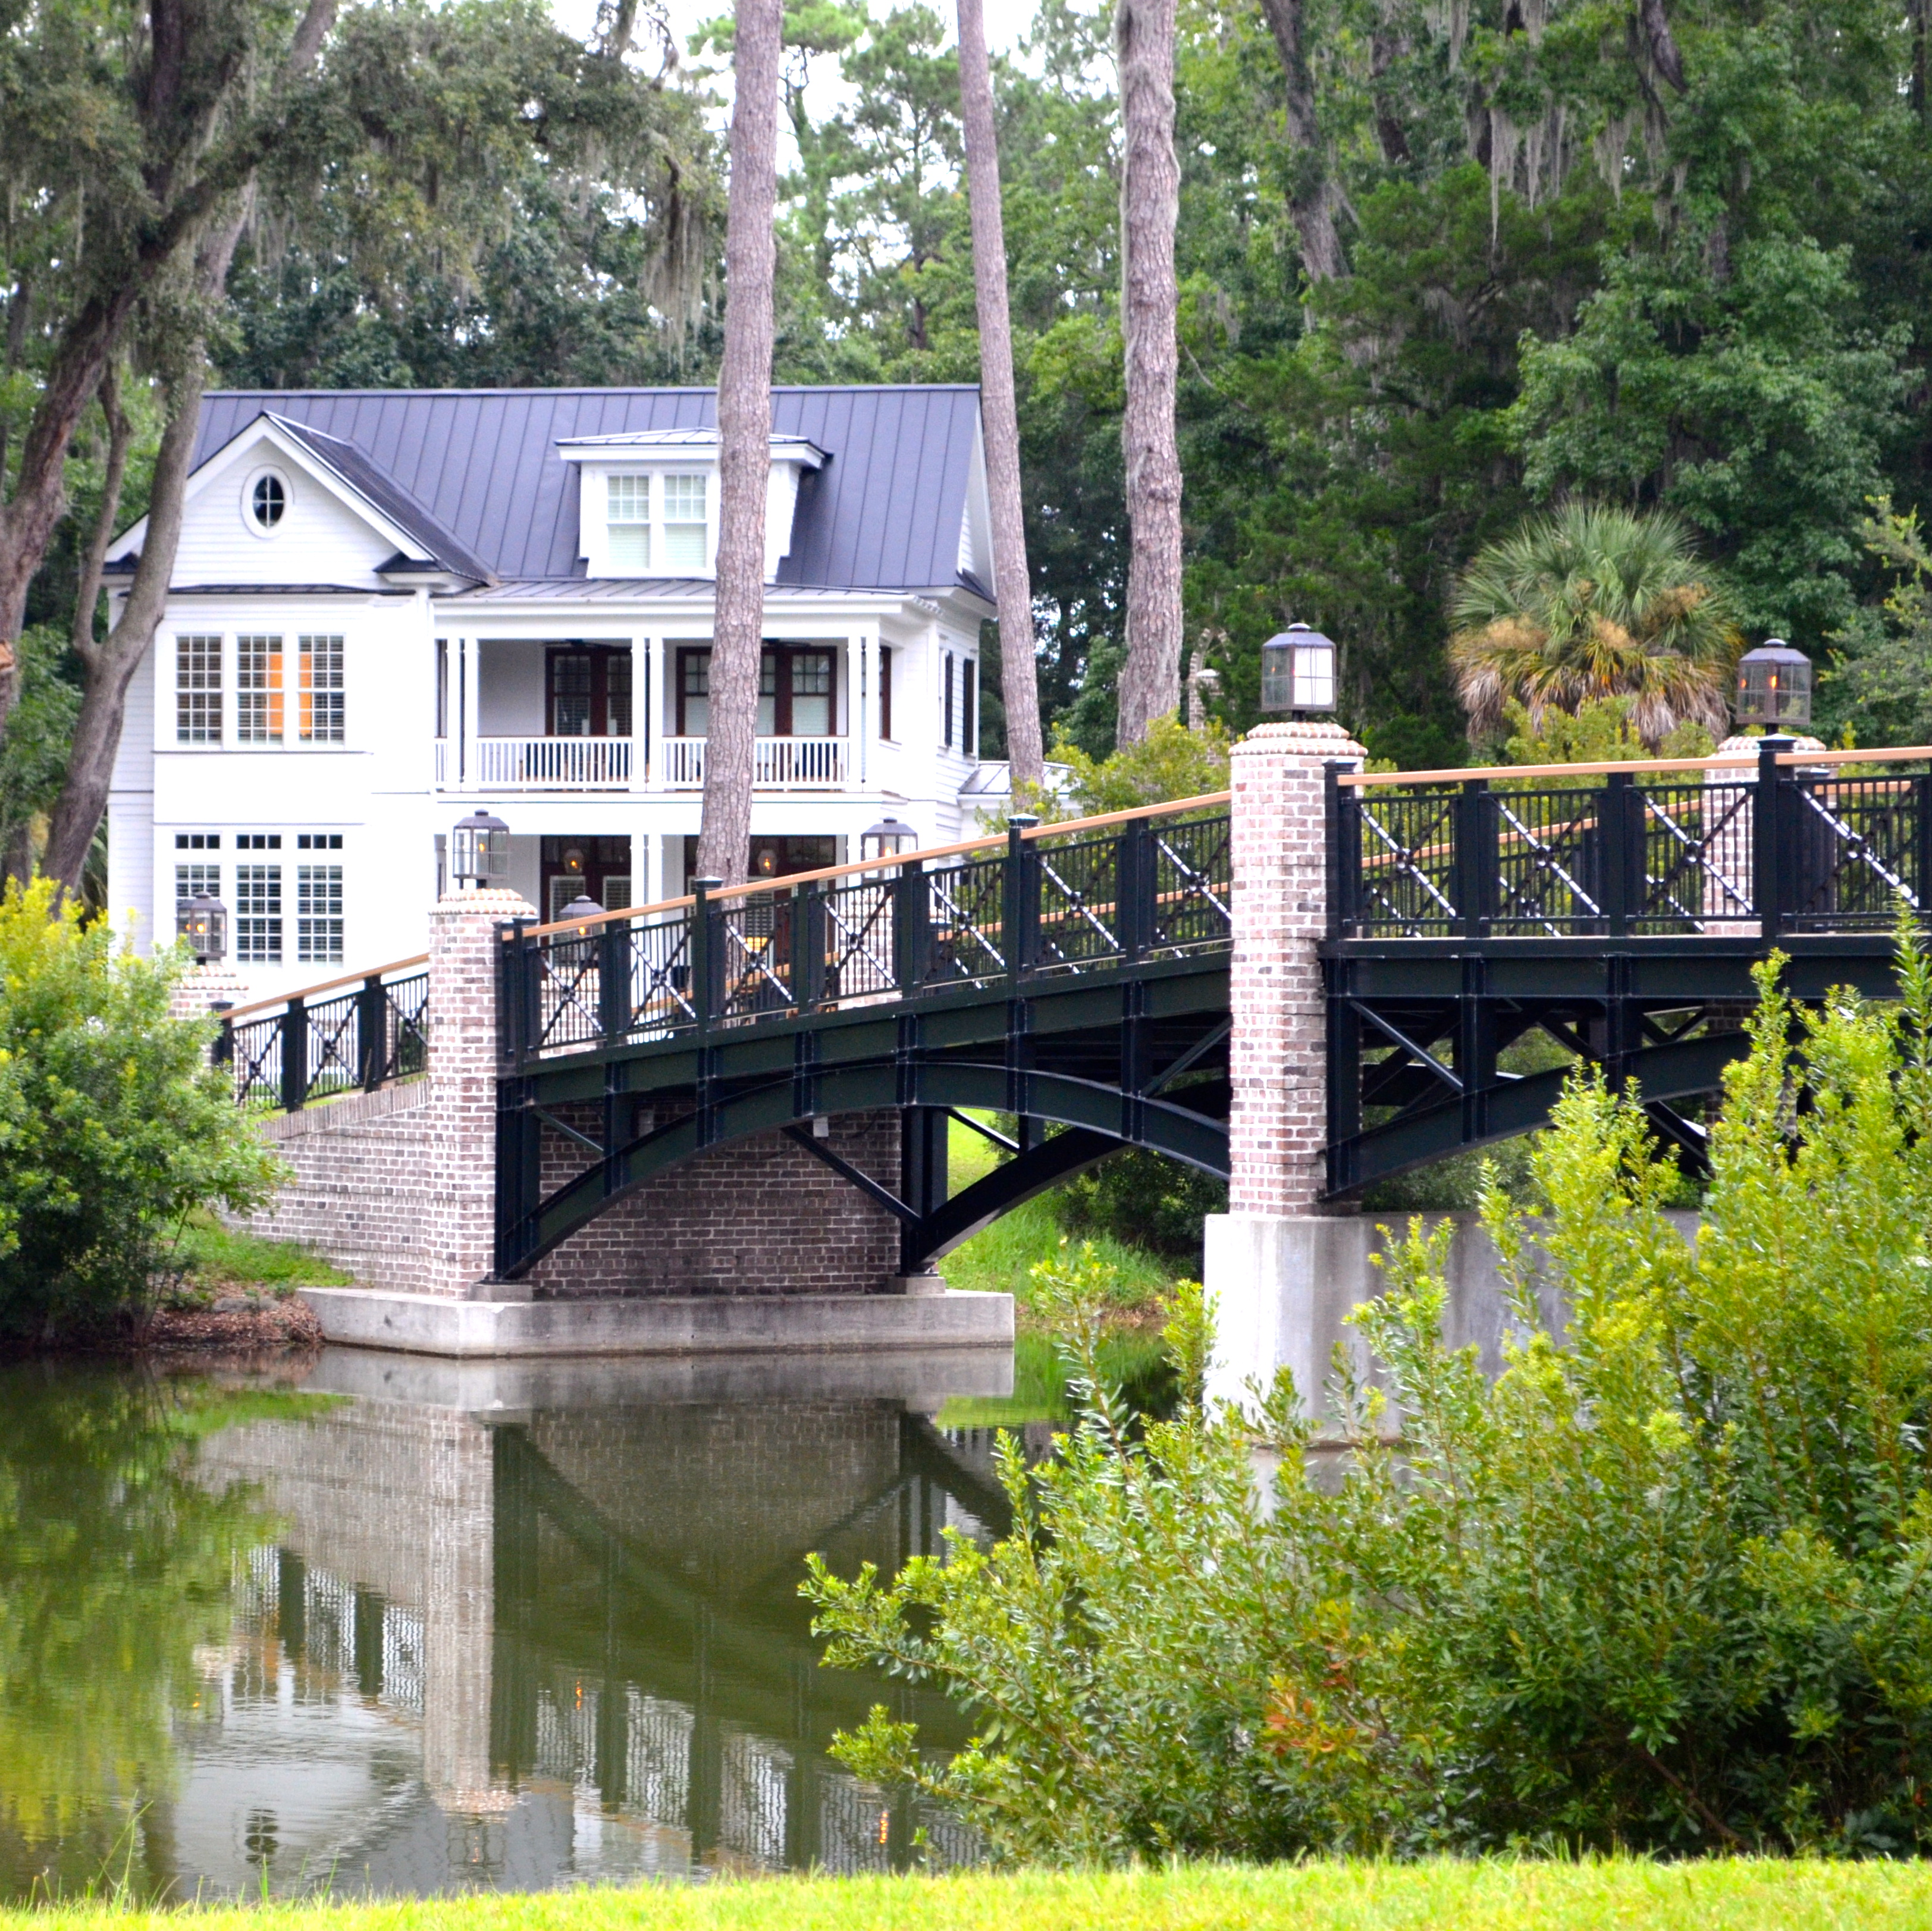 the lovely lowcountry homes of palmetto bluff - after orange county